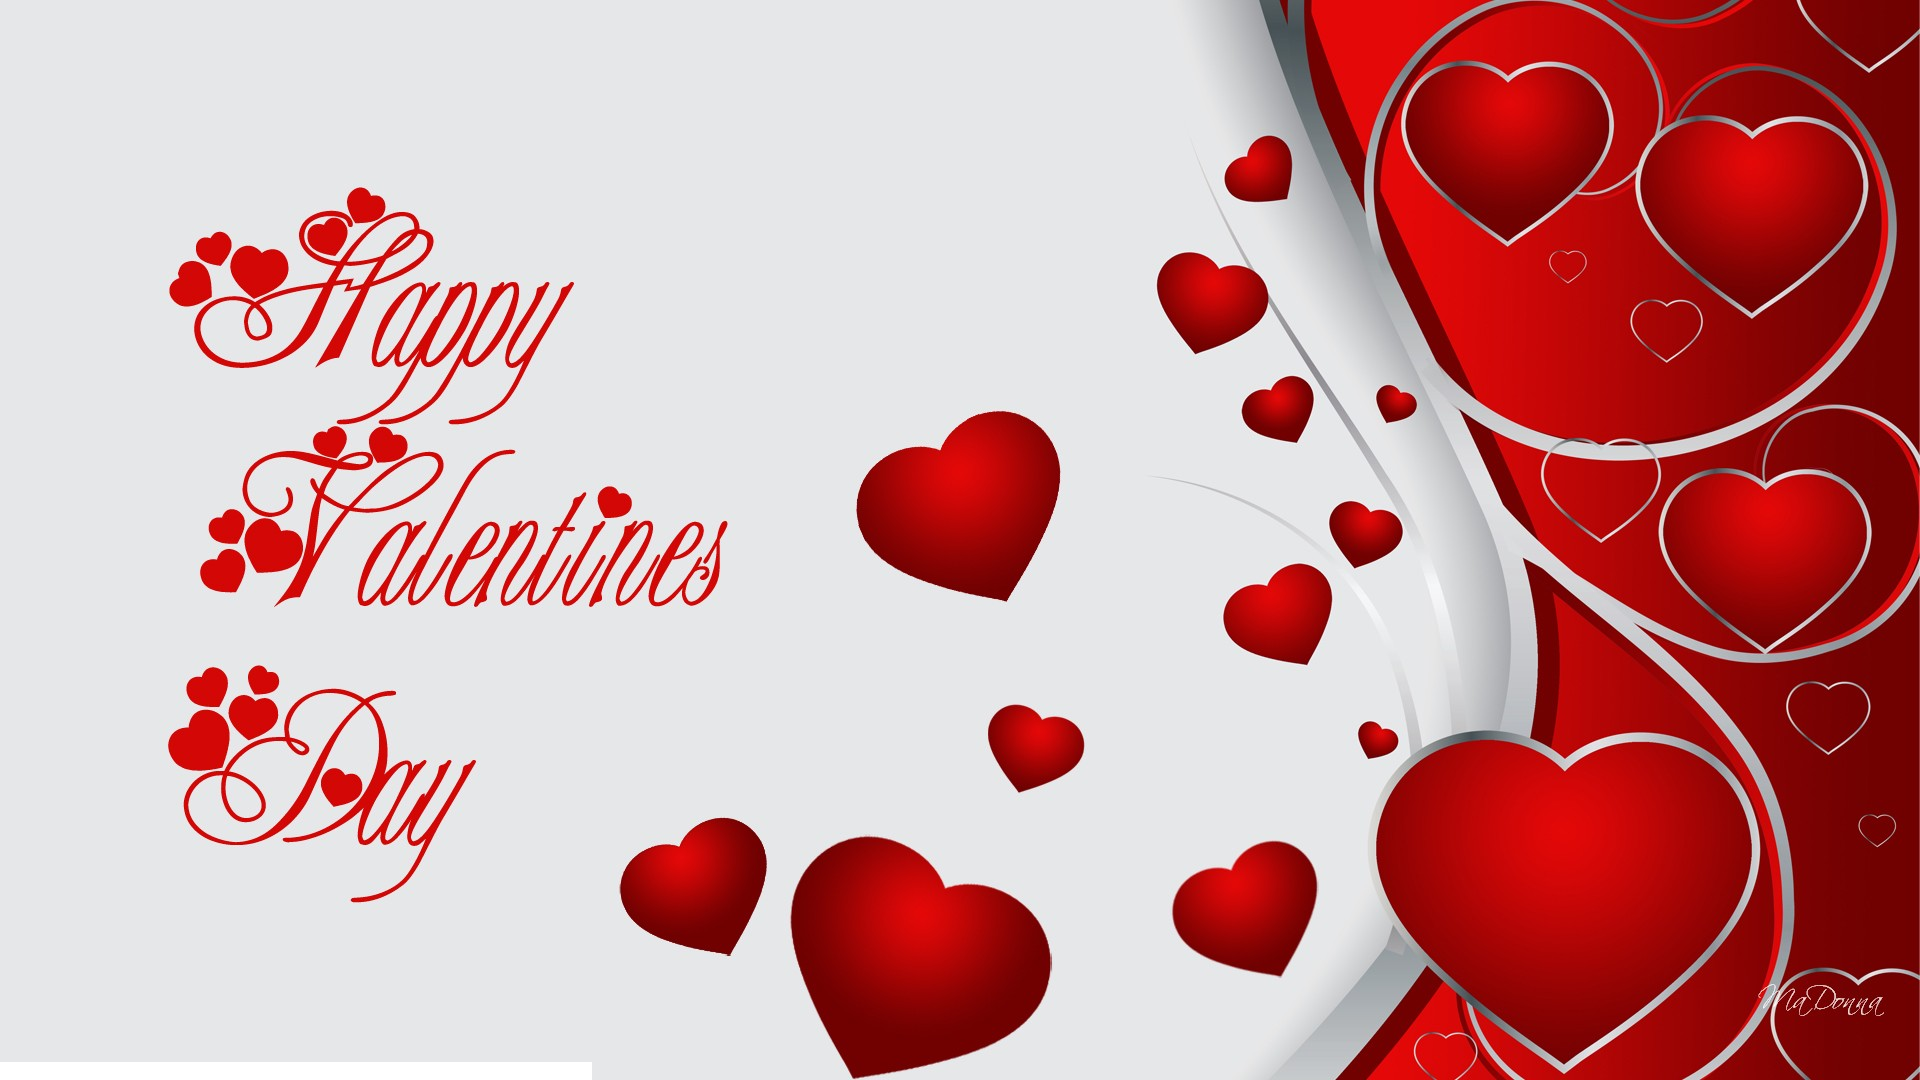 10 Best Valentines Day Pc Wallpapers To Make The Mood Romantic